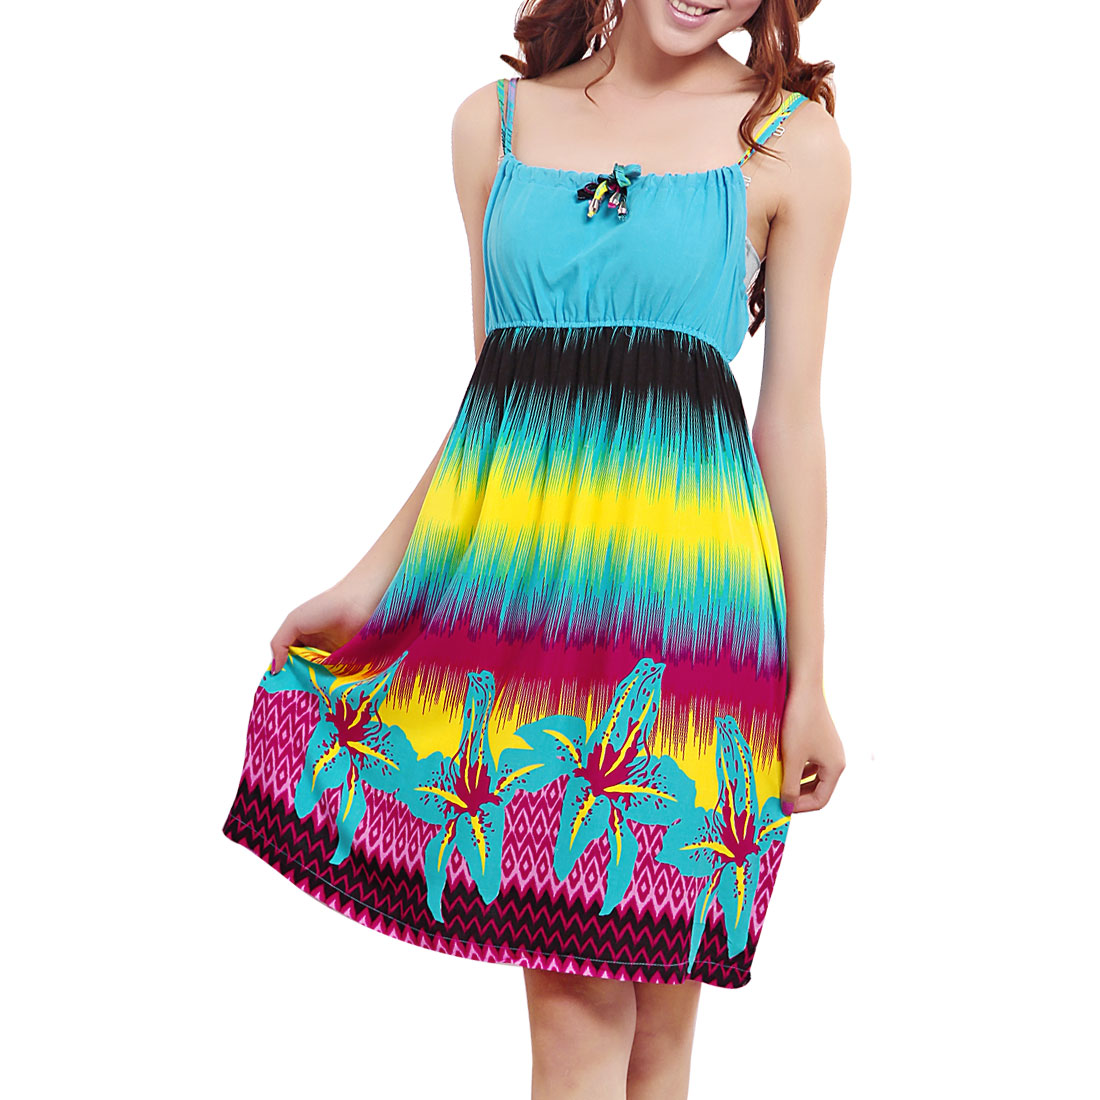 Women Flower Printed Colorful Empire Waist Nightgown Dress XS